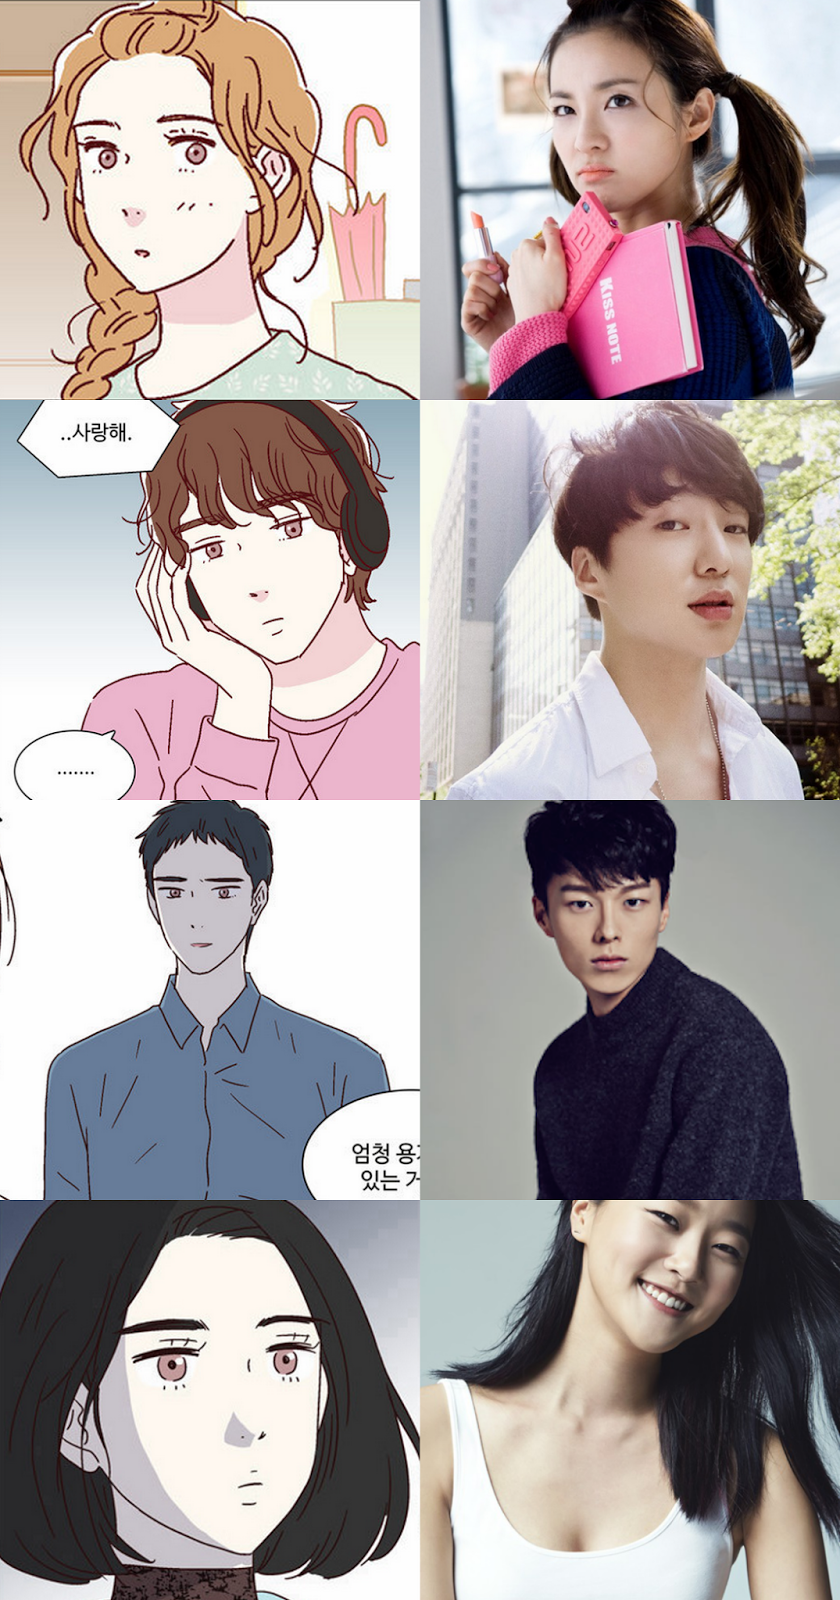 The Seoul Story On Twitter We Broke Up Web Drama Manhwa